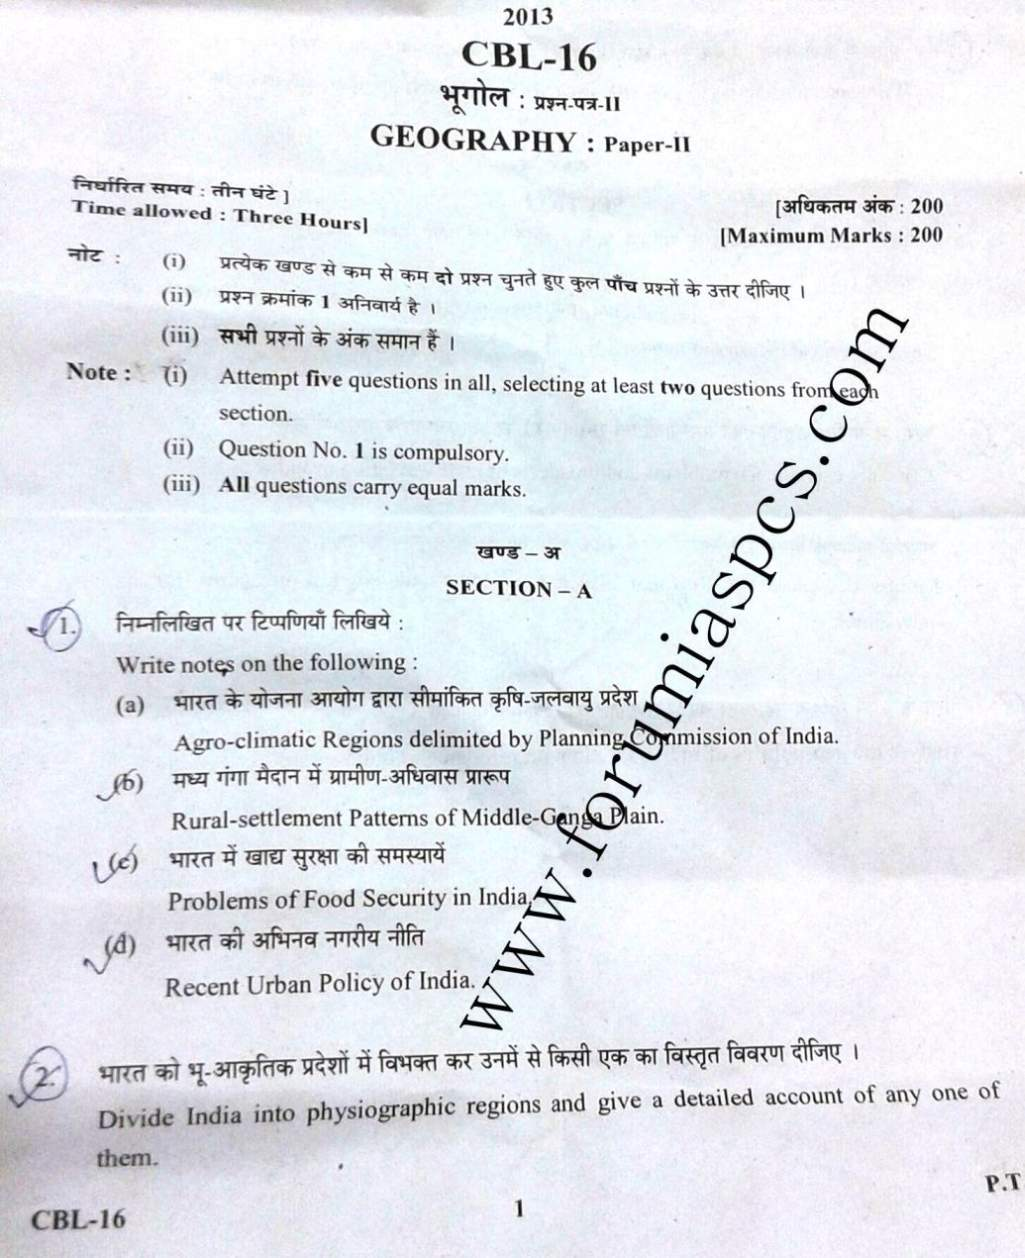 custom paper writing geography a geography coursework martin luther king book reports custom papers las vegas a geography coursework martin luther king book reports custom papers las